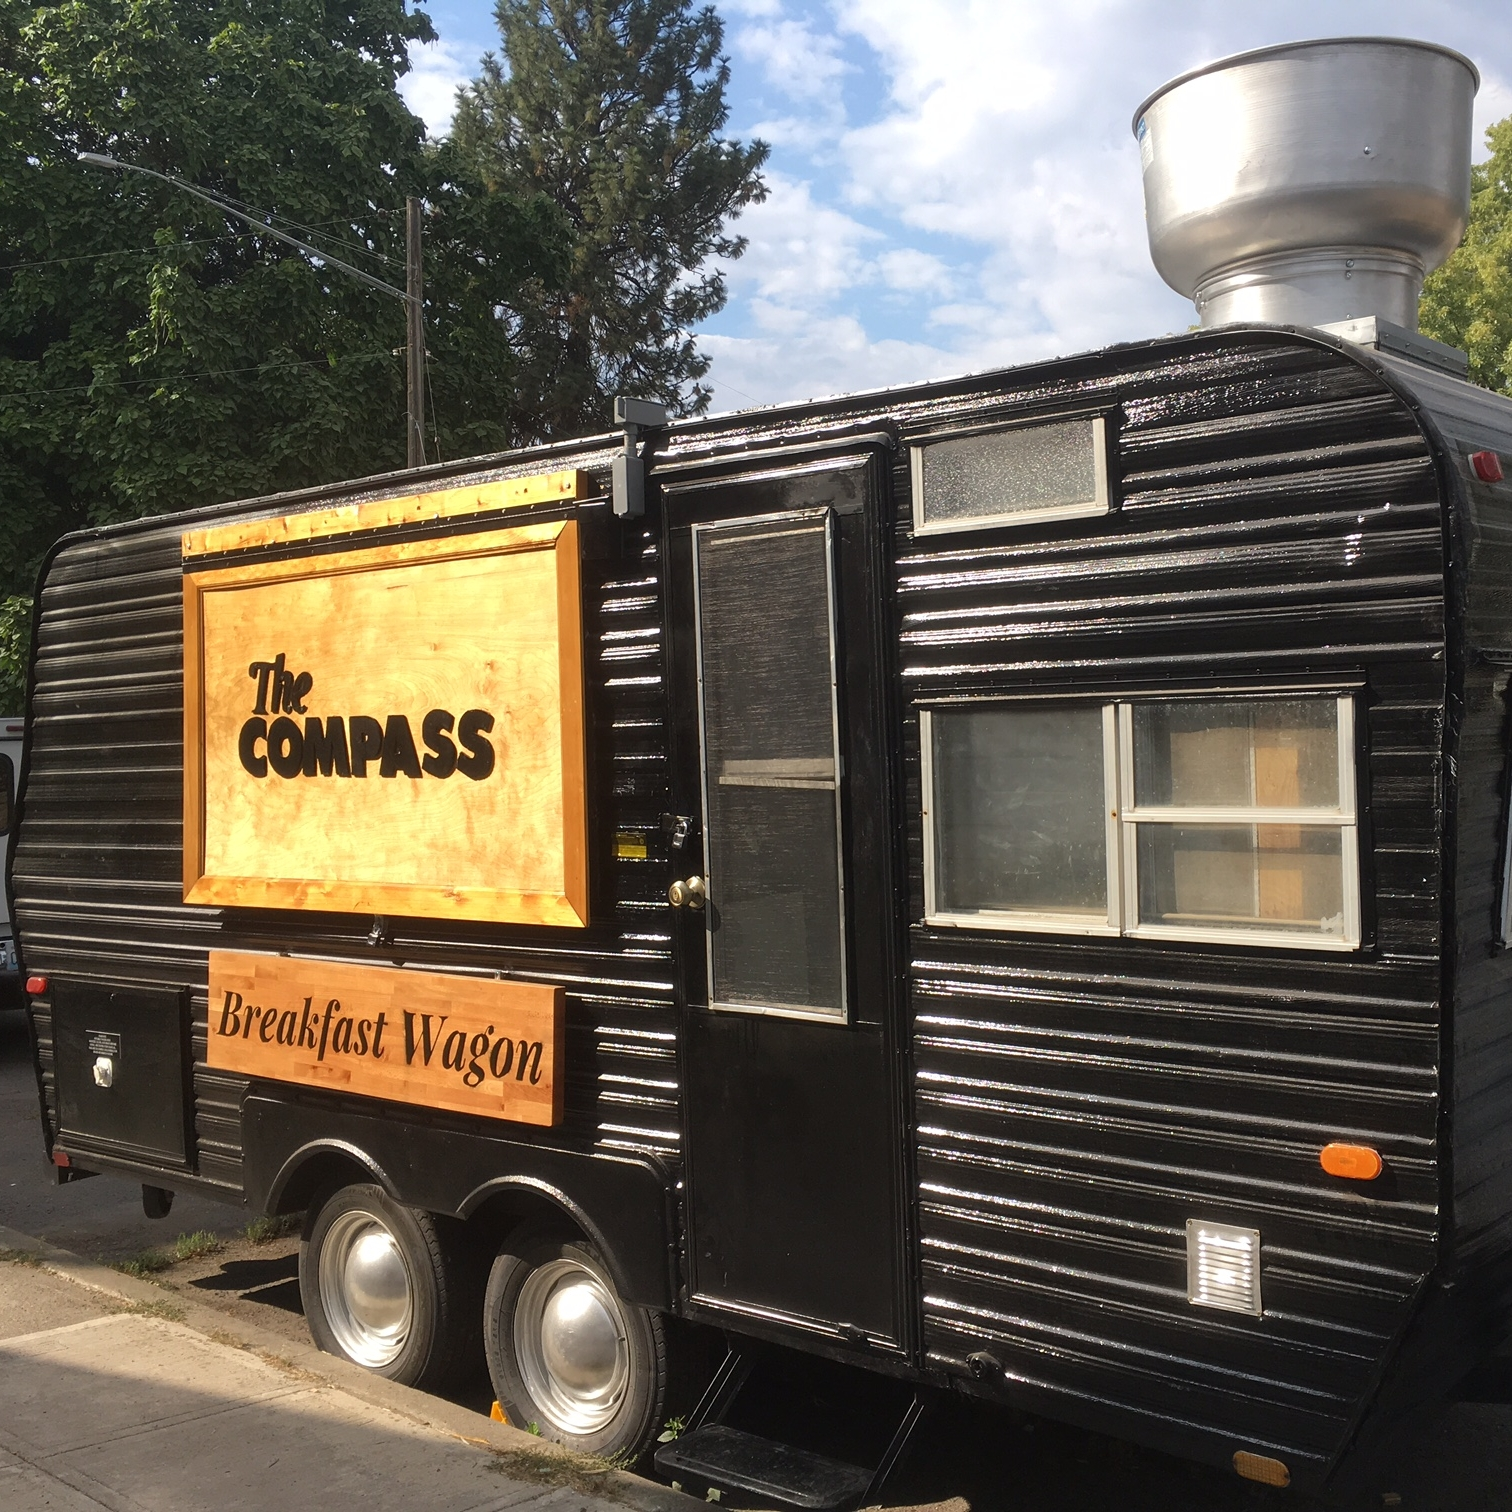 THE COMPASS BREAKFAST WAGON